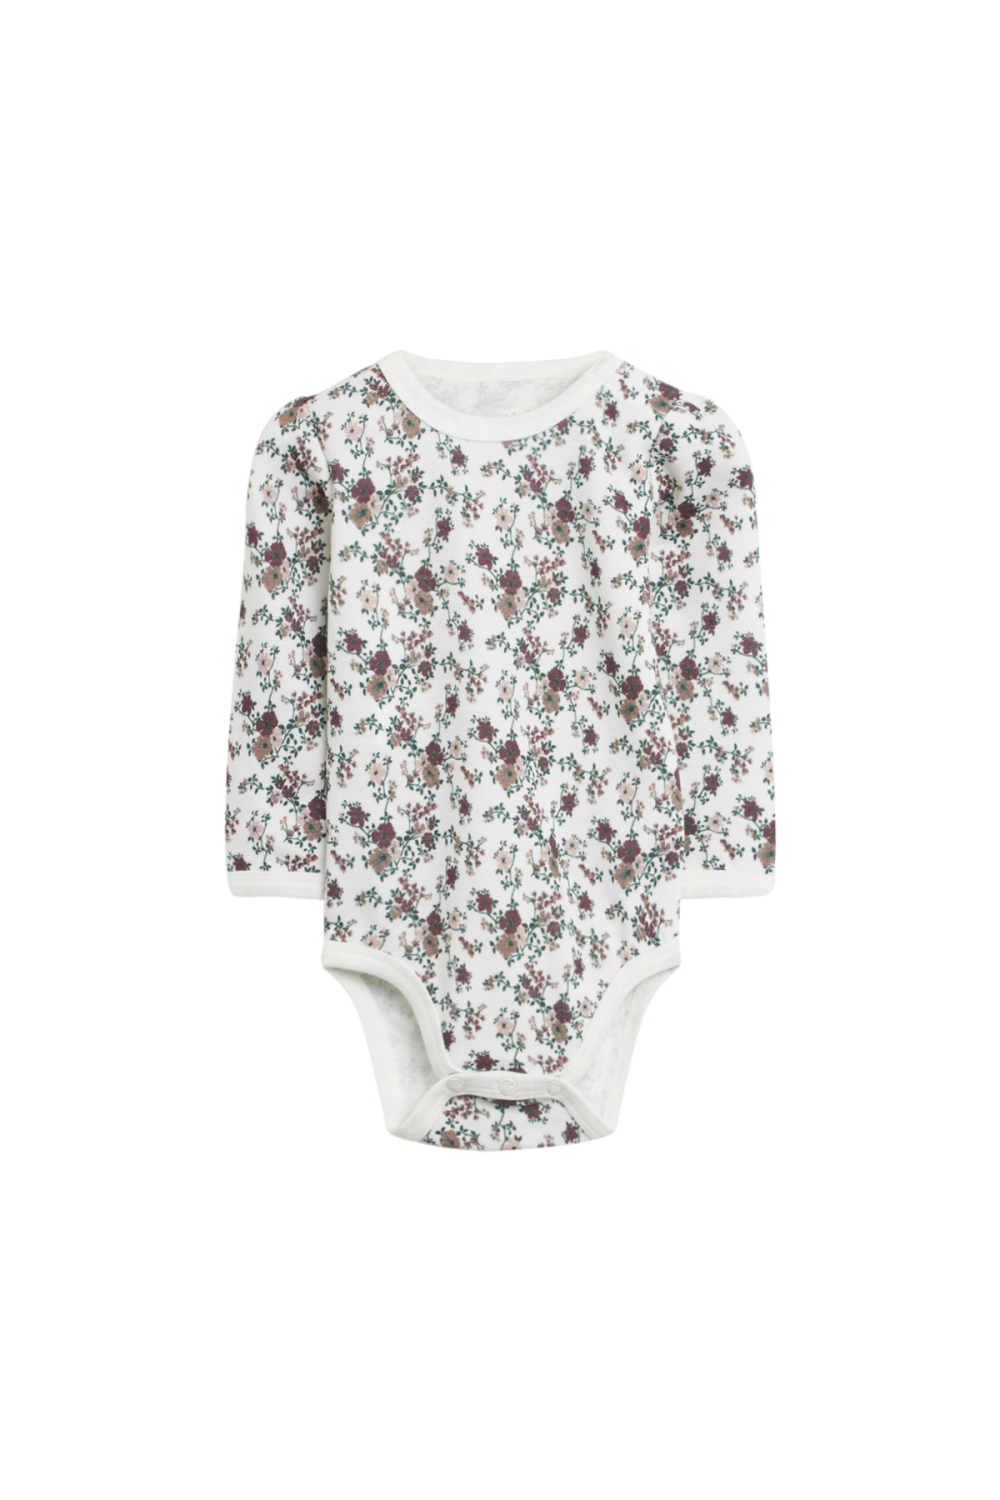 Hust and Claire - Body Baloo med blomster ull/bambus, offwhite